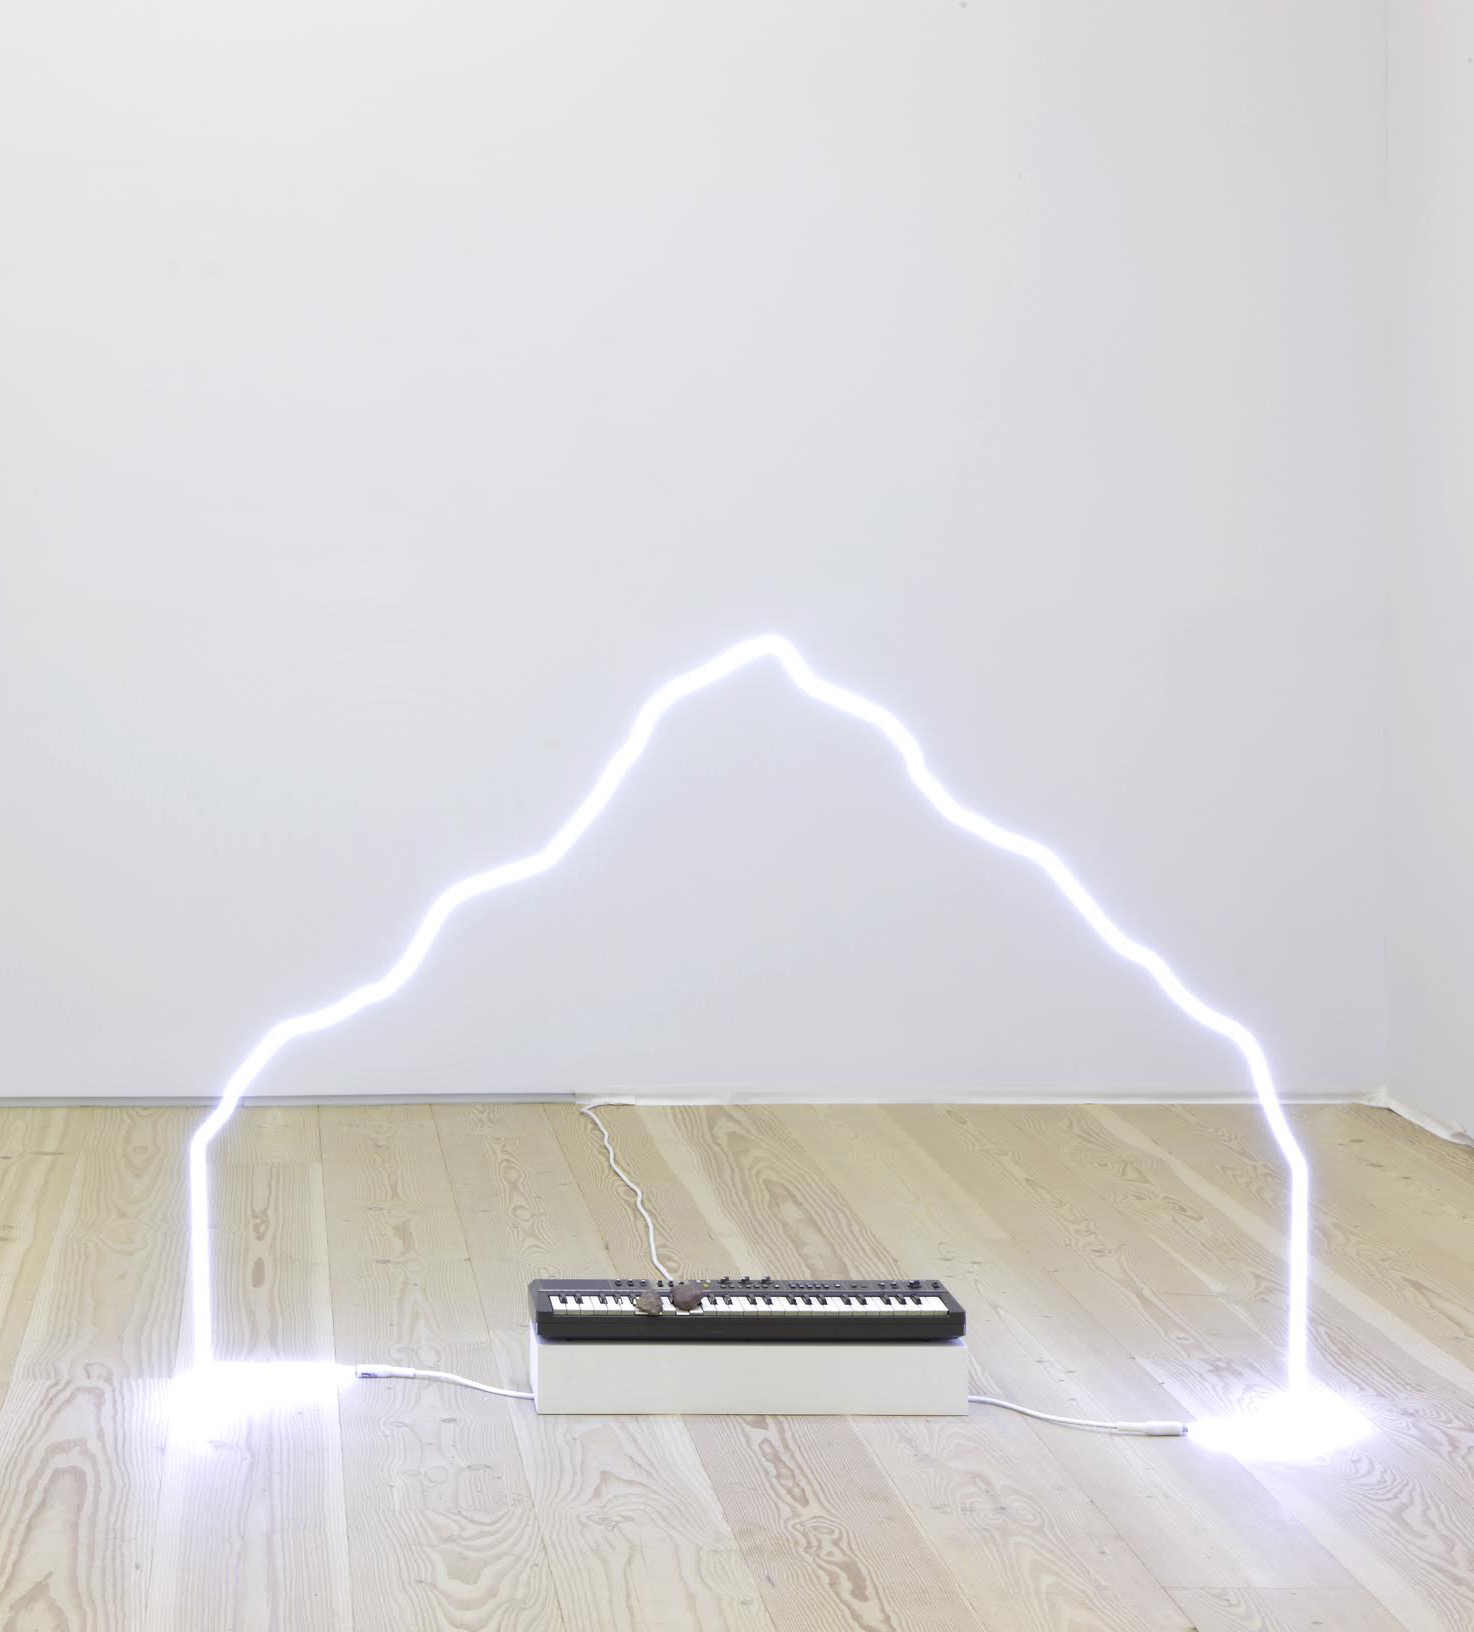 in defiance of being #2, 2014  neon, Casiotone MT-68 keyboard, rocks, dimensions variable